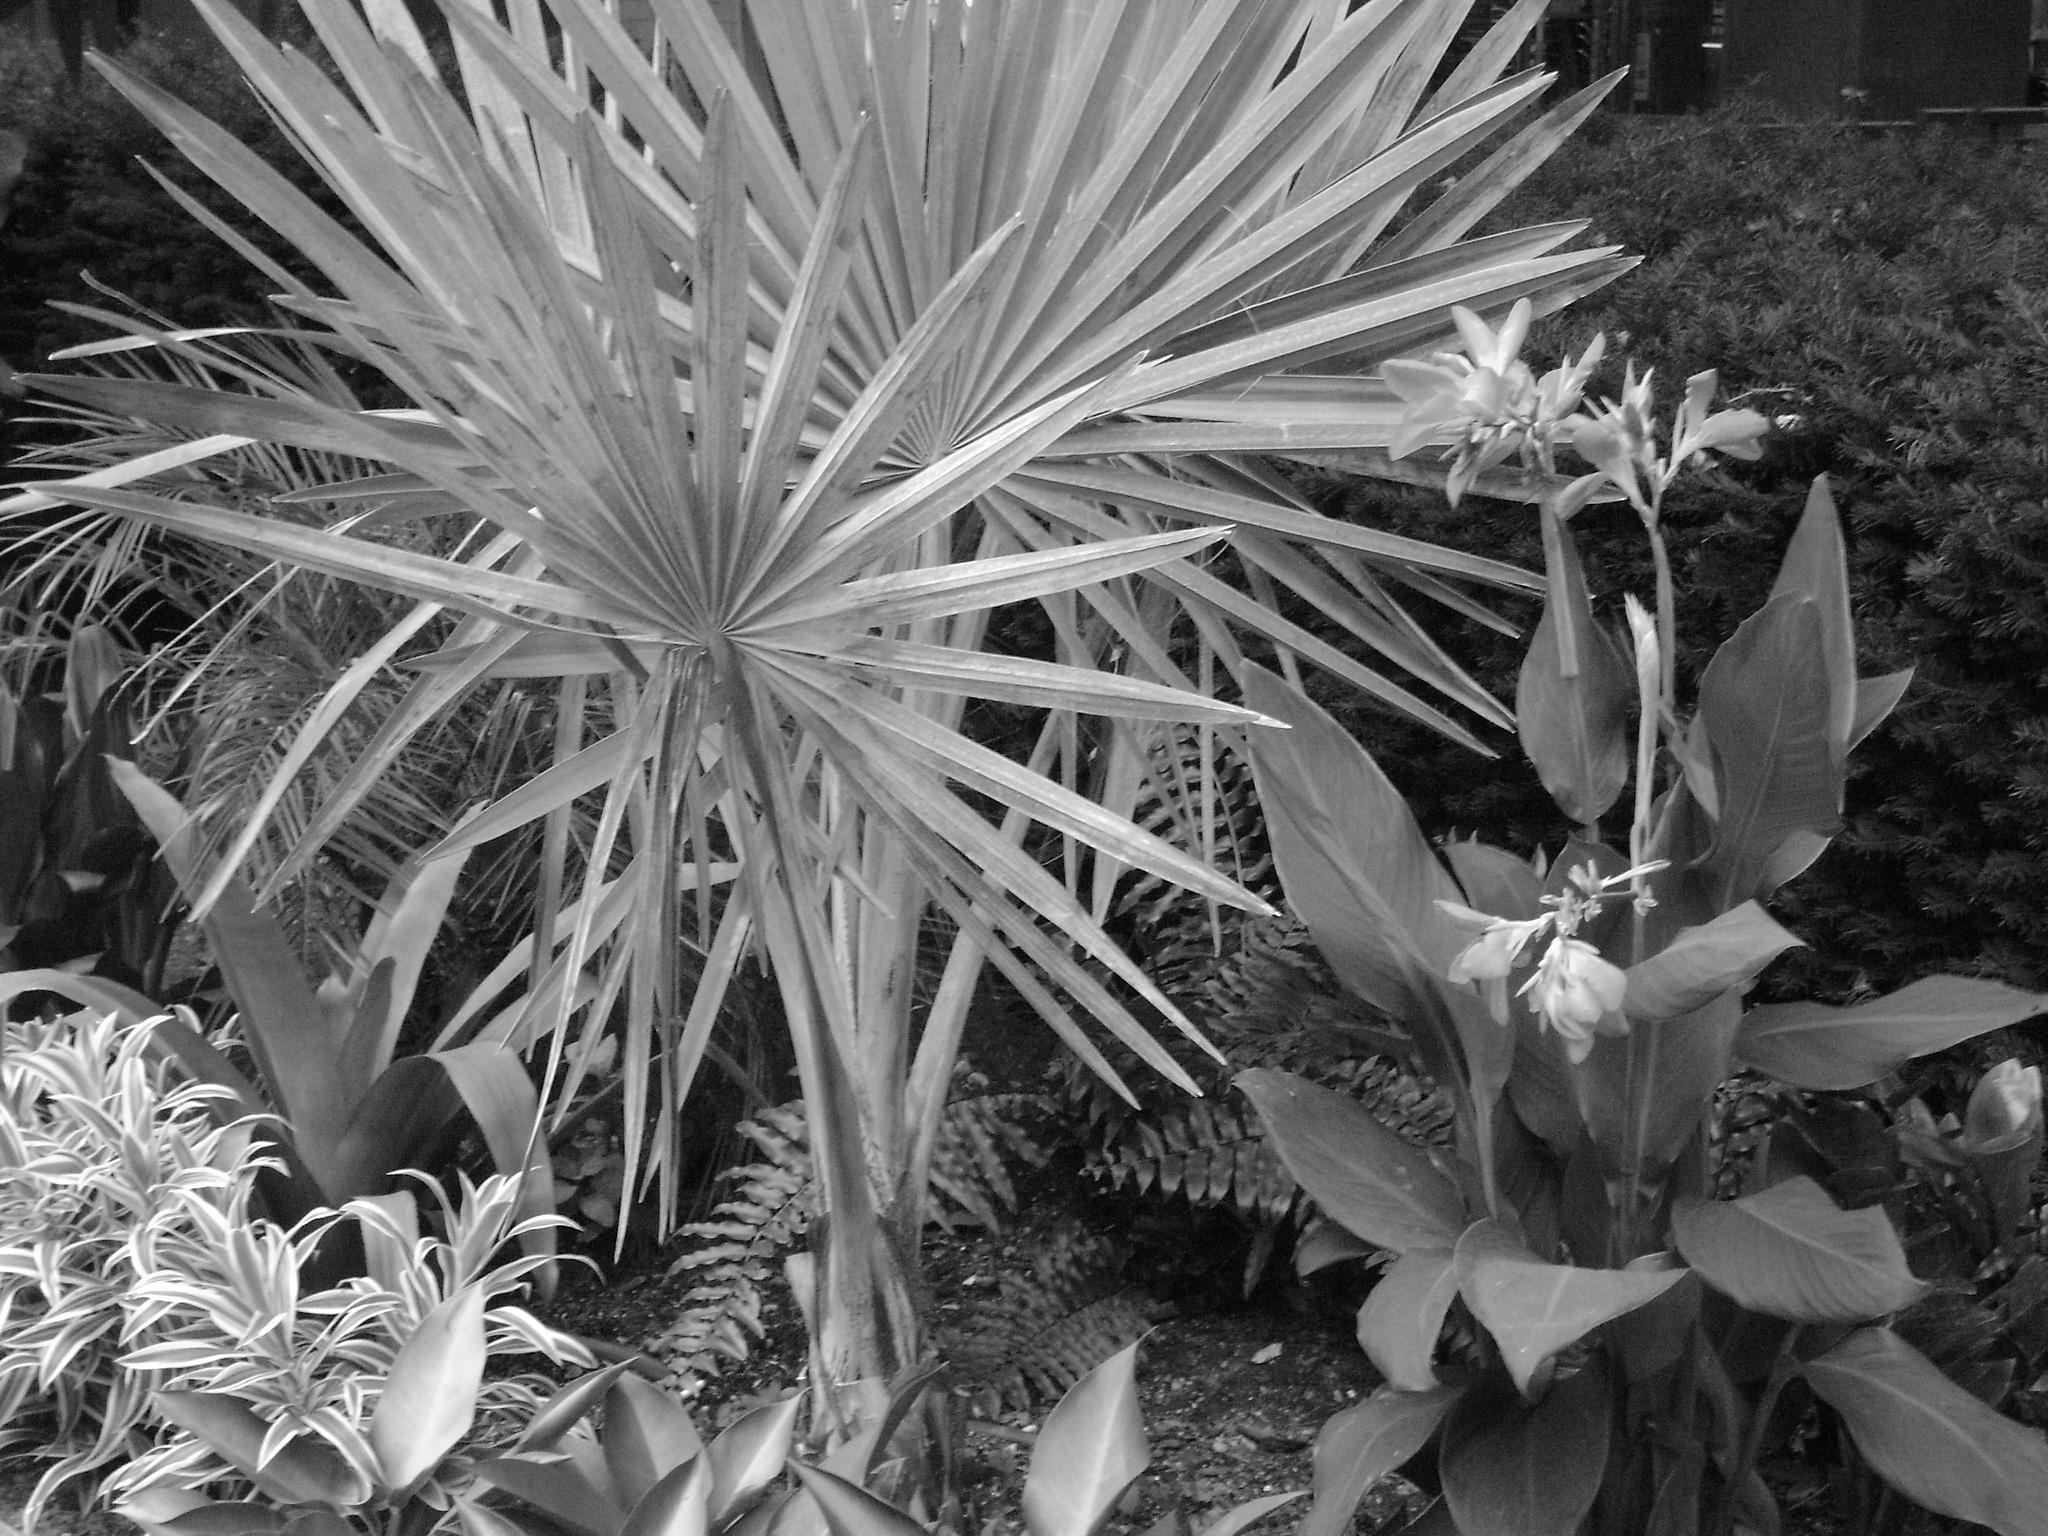 Exotic plants B/W by Diana Marenfeld